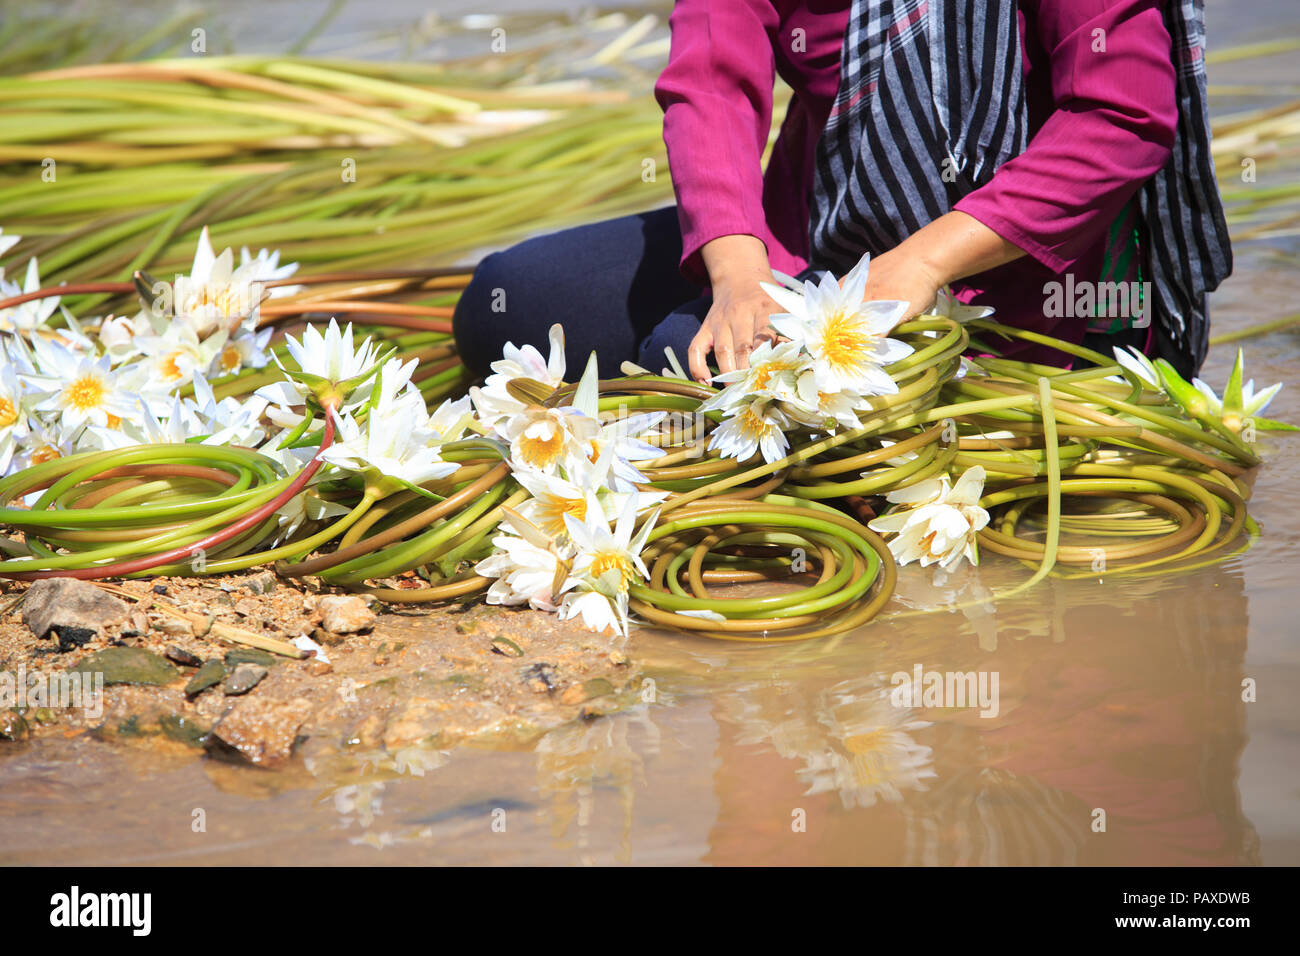 Vietnamese woman with conical hat is cleaning lilies after harvest under swamps in flood season in south of Vietnam - Stock Image